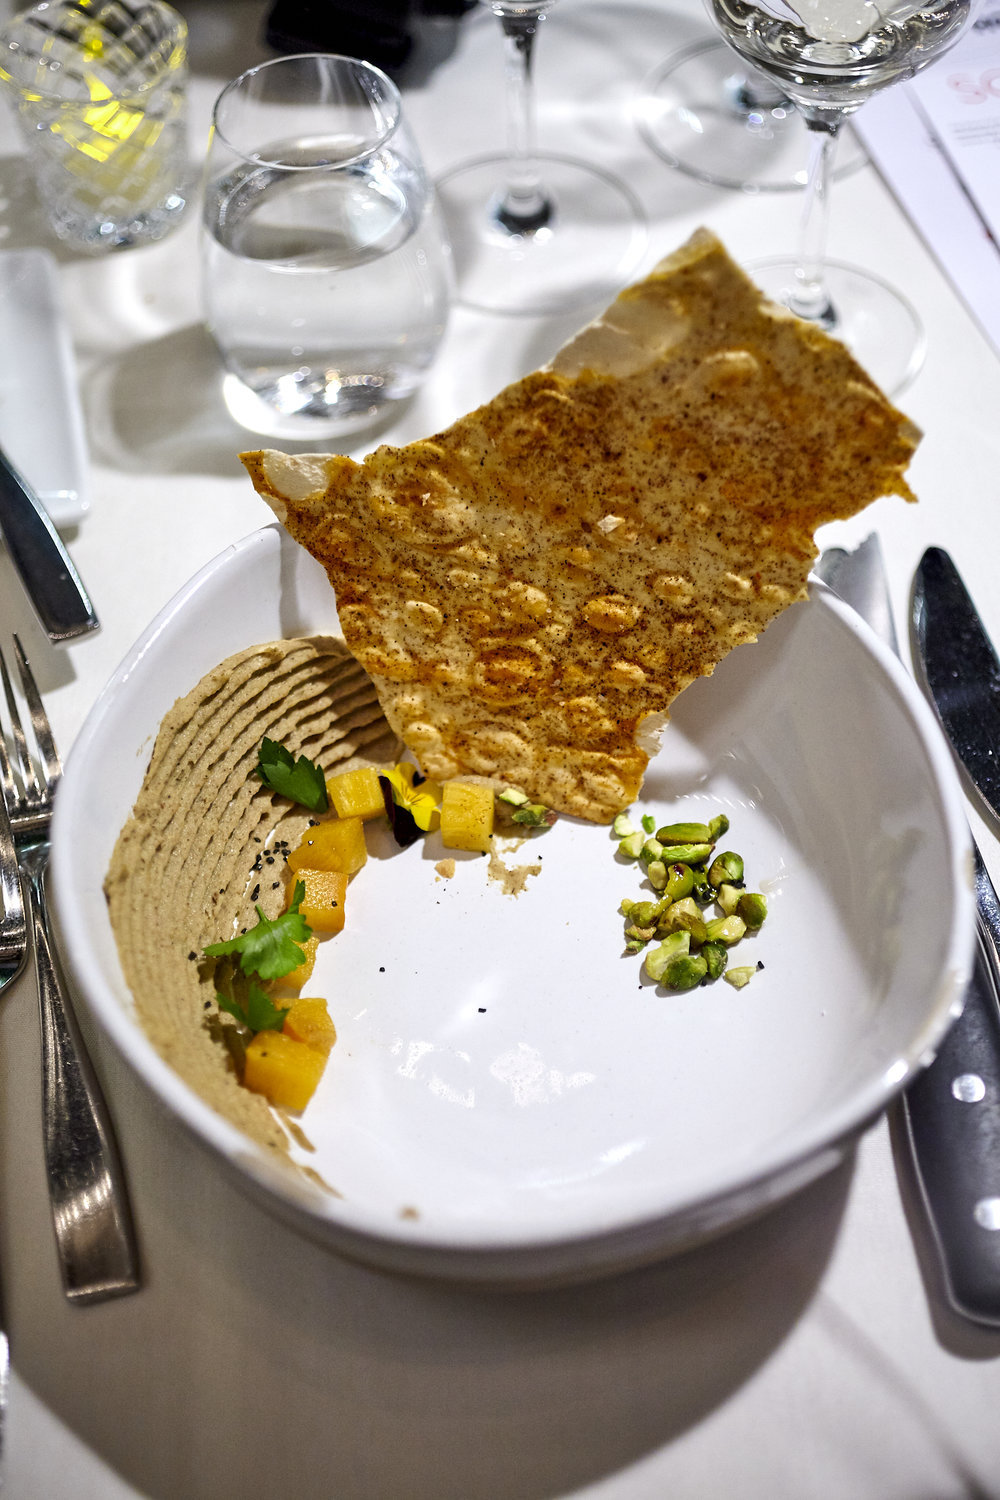 Our famous Cricket Hummus served with Pickled Persimmon,Lava Salt, Pistachio and Brown Butter.